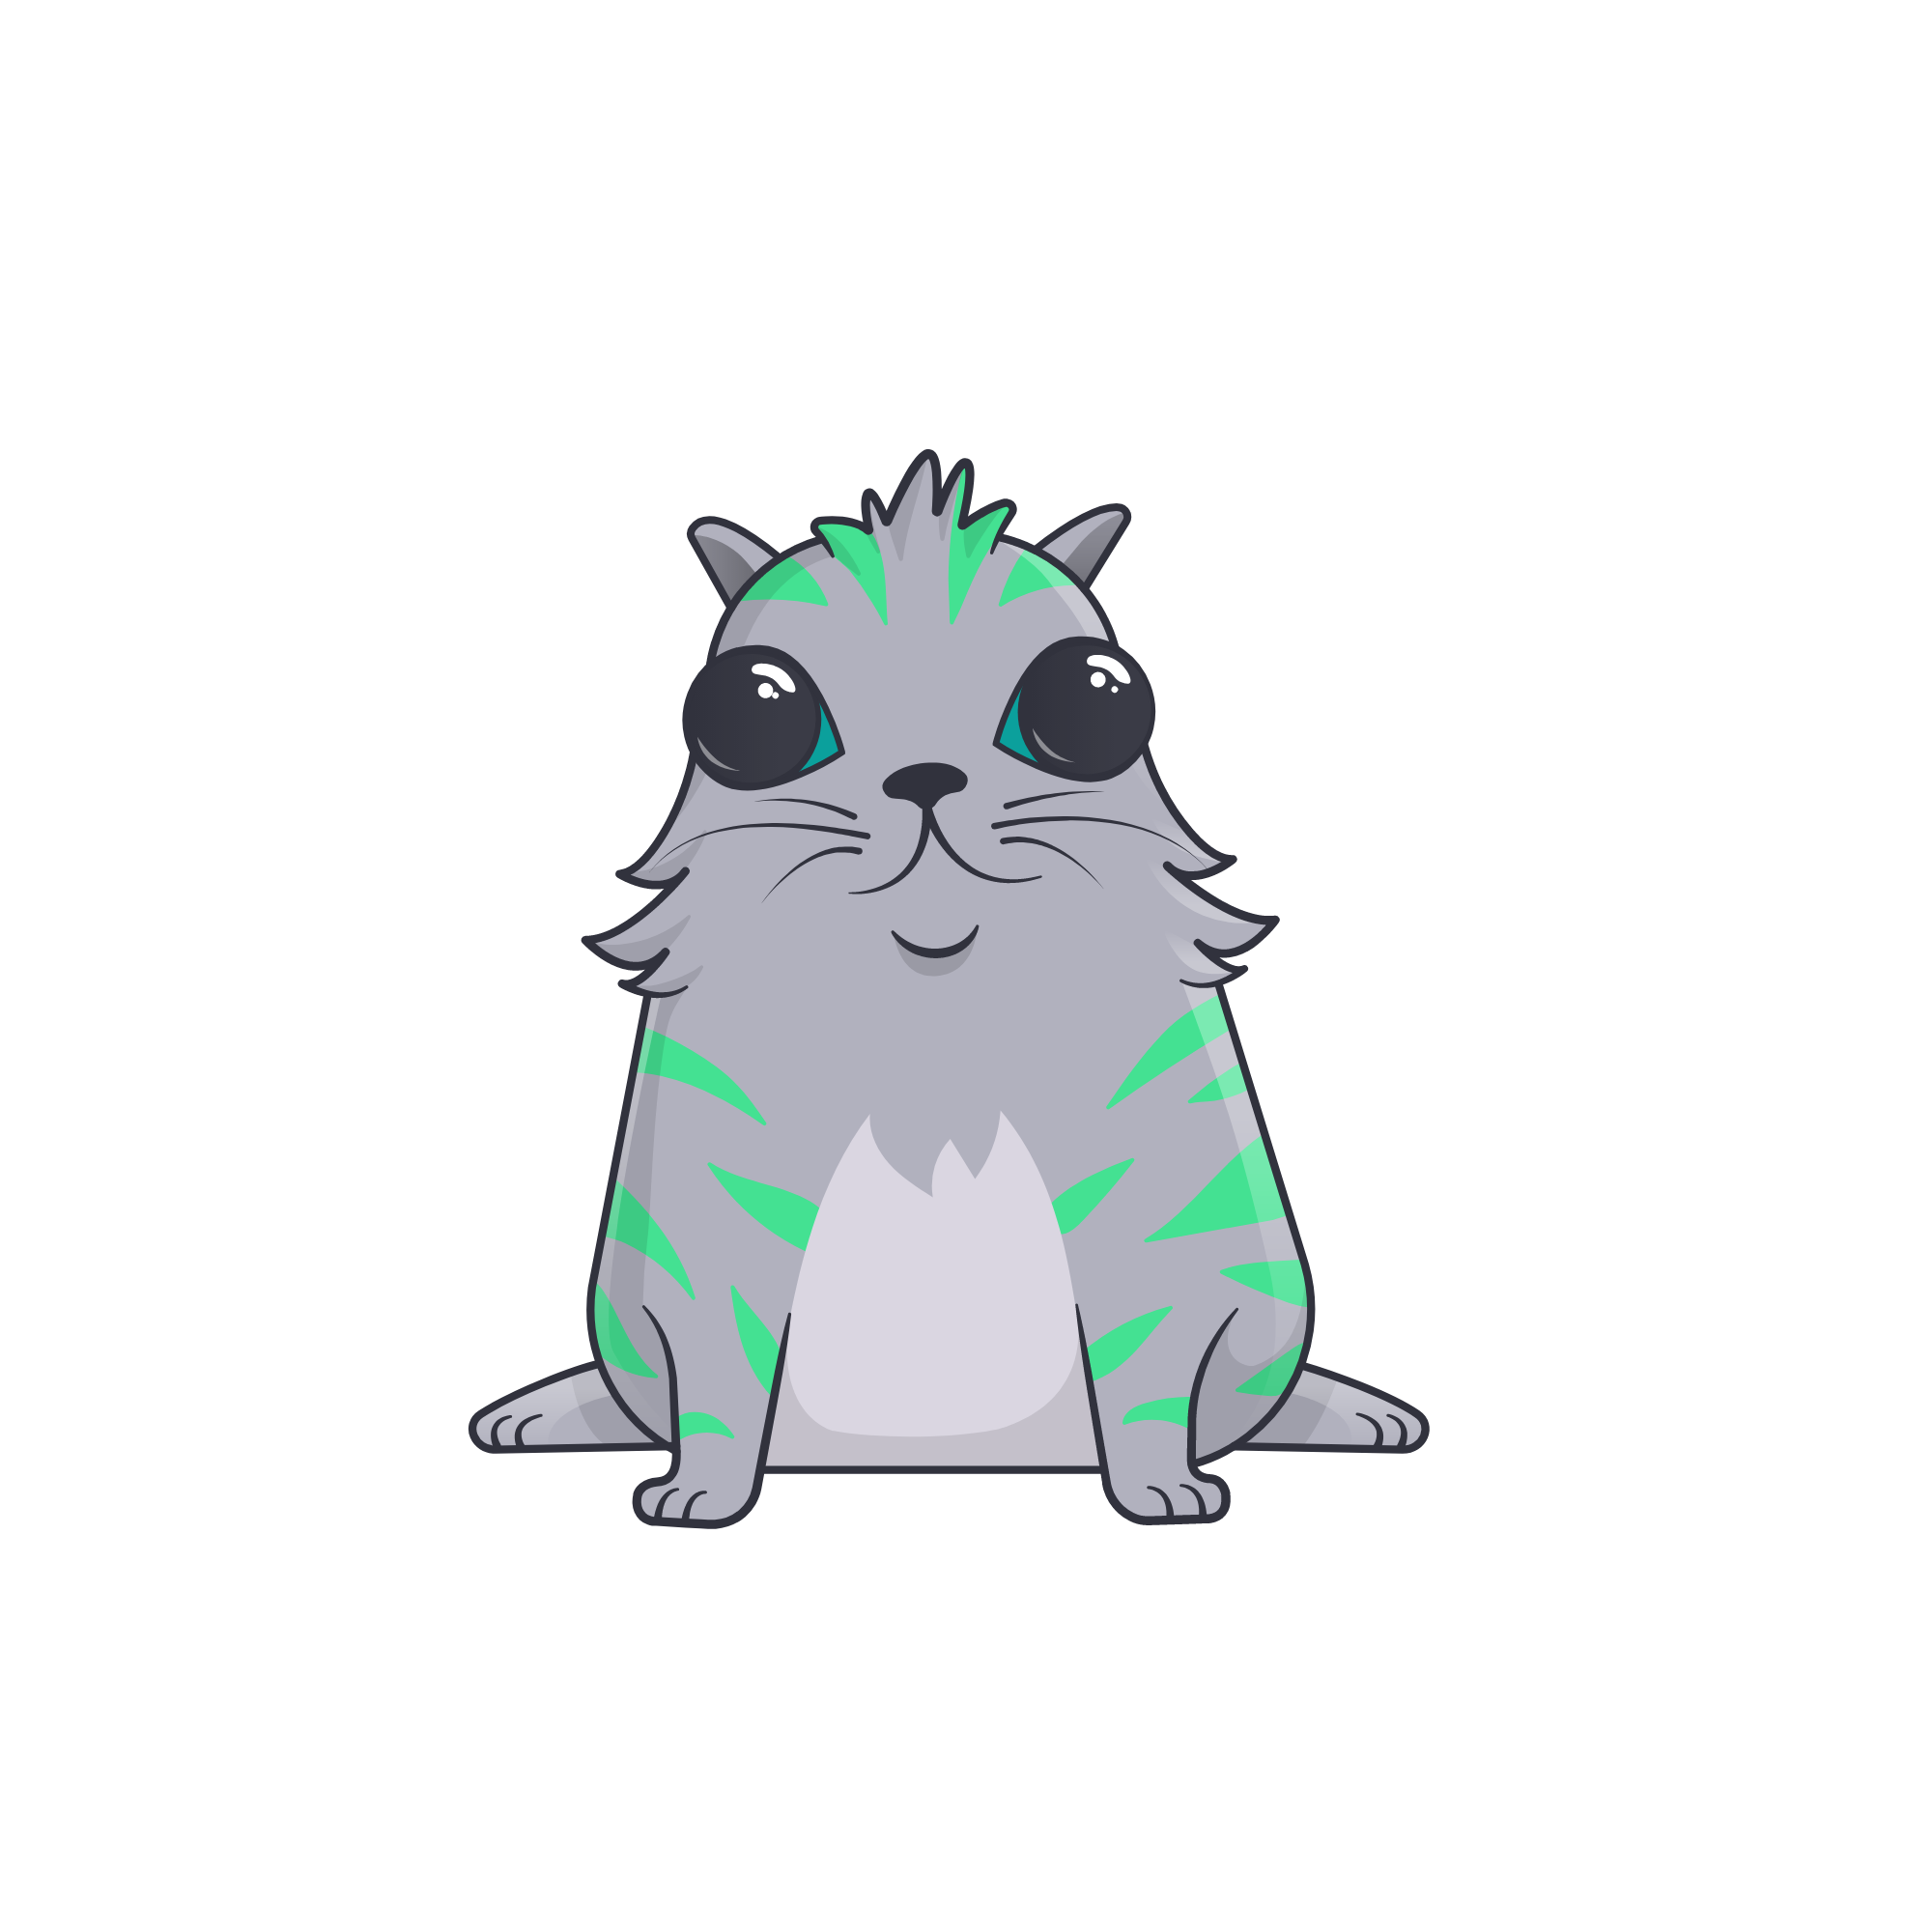 cryptokitty #906638